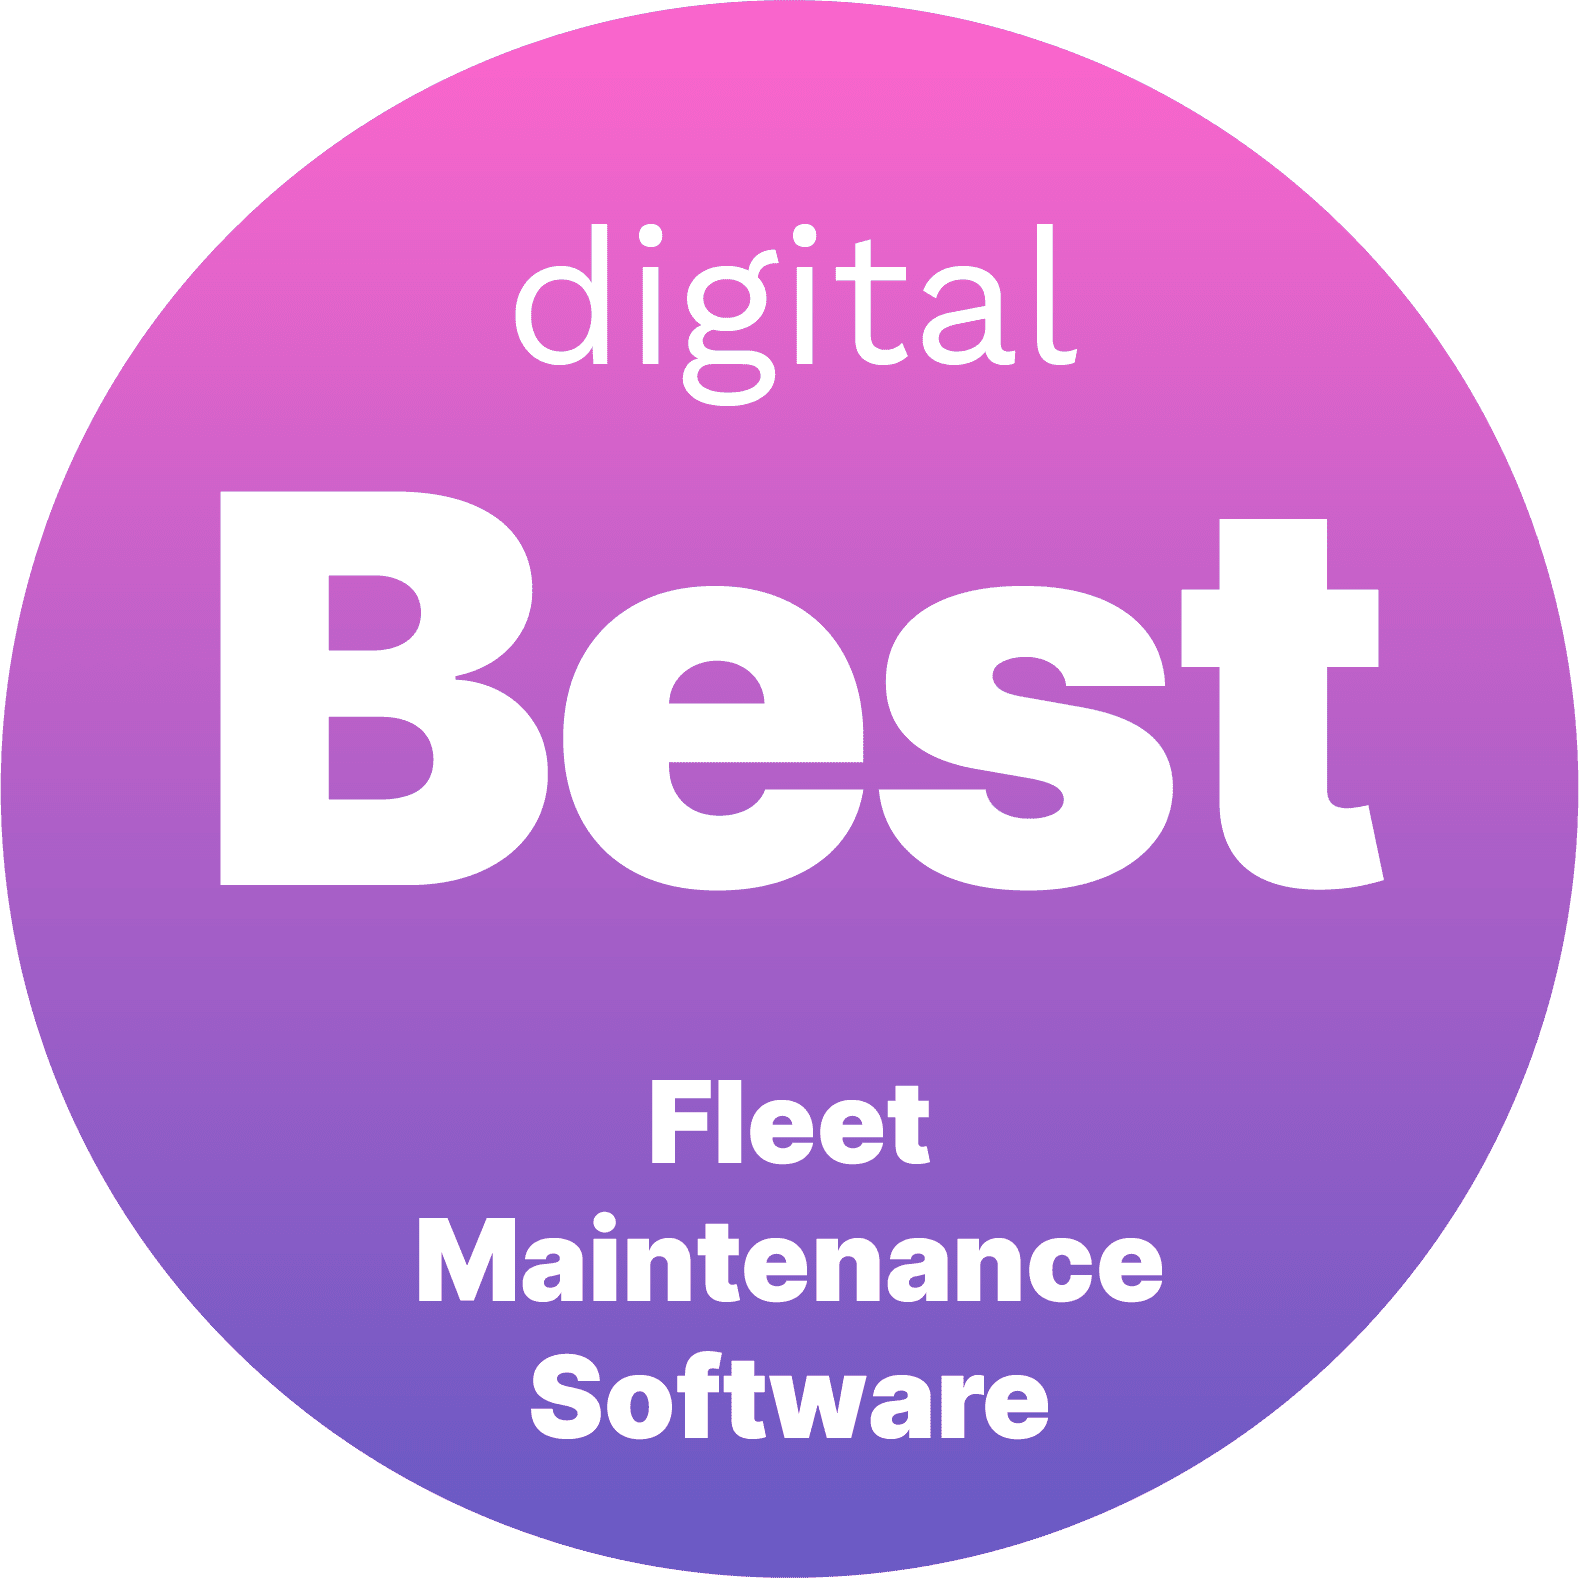 Best Fleet Maintenance Software by Digital.com